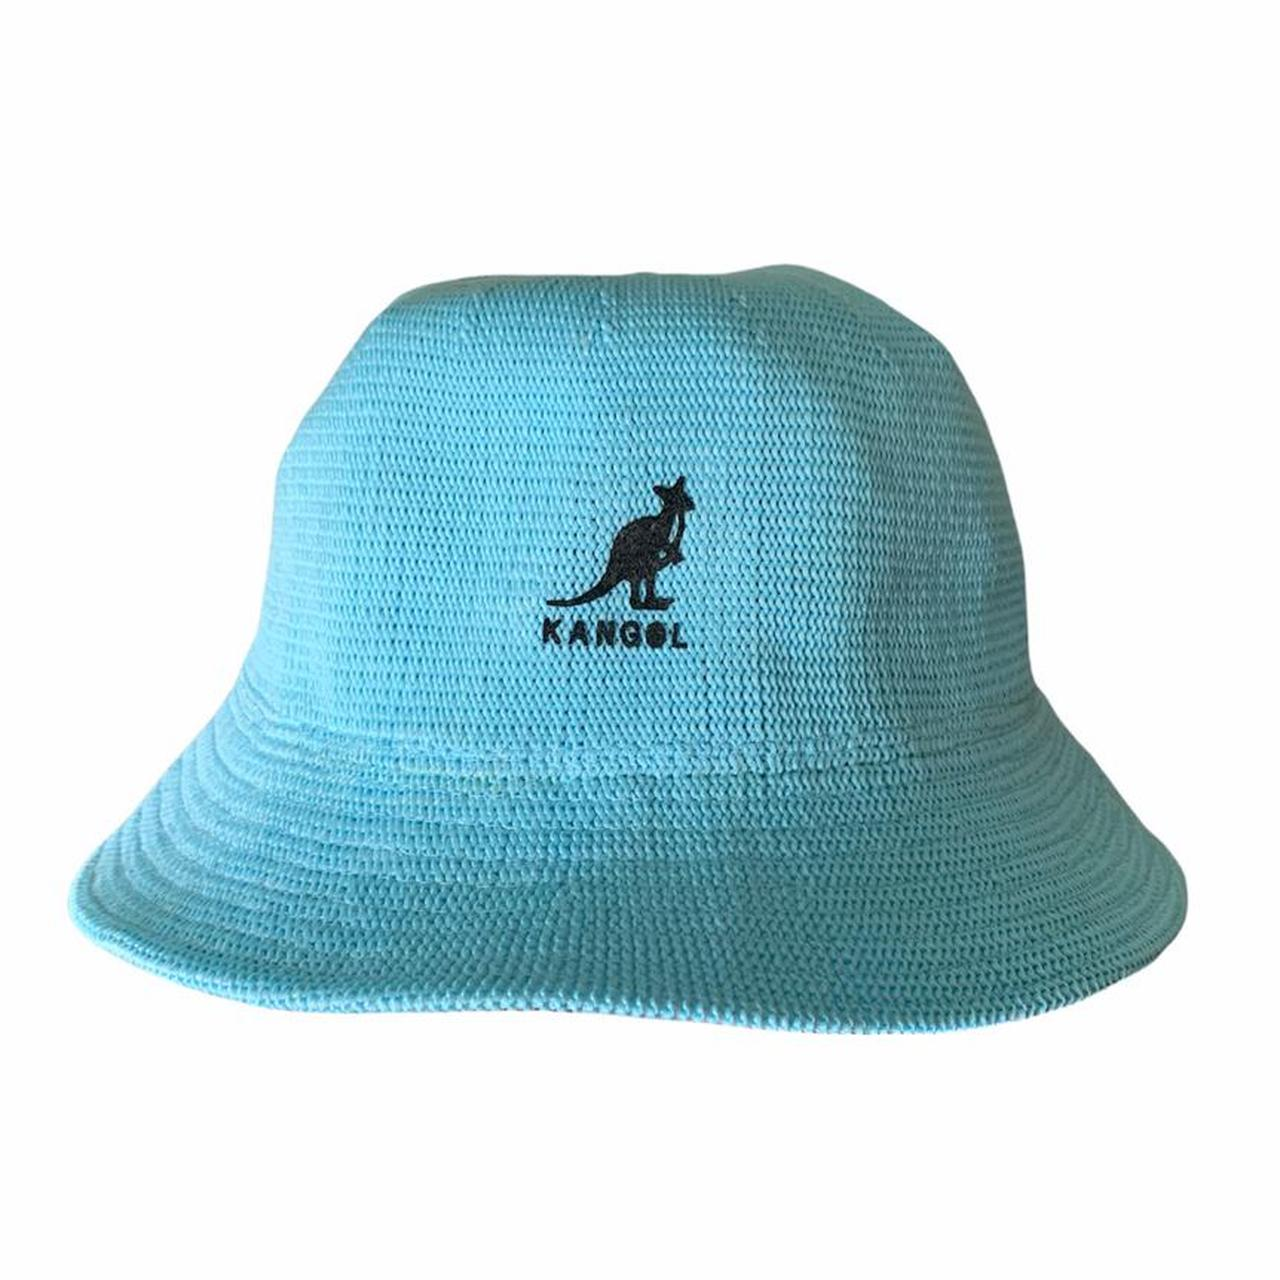 Product Image 1 - Kangol Tropic Bucket Hat In